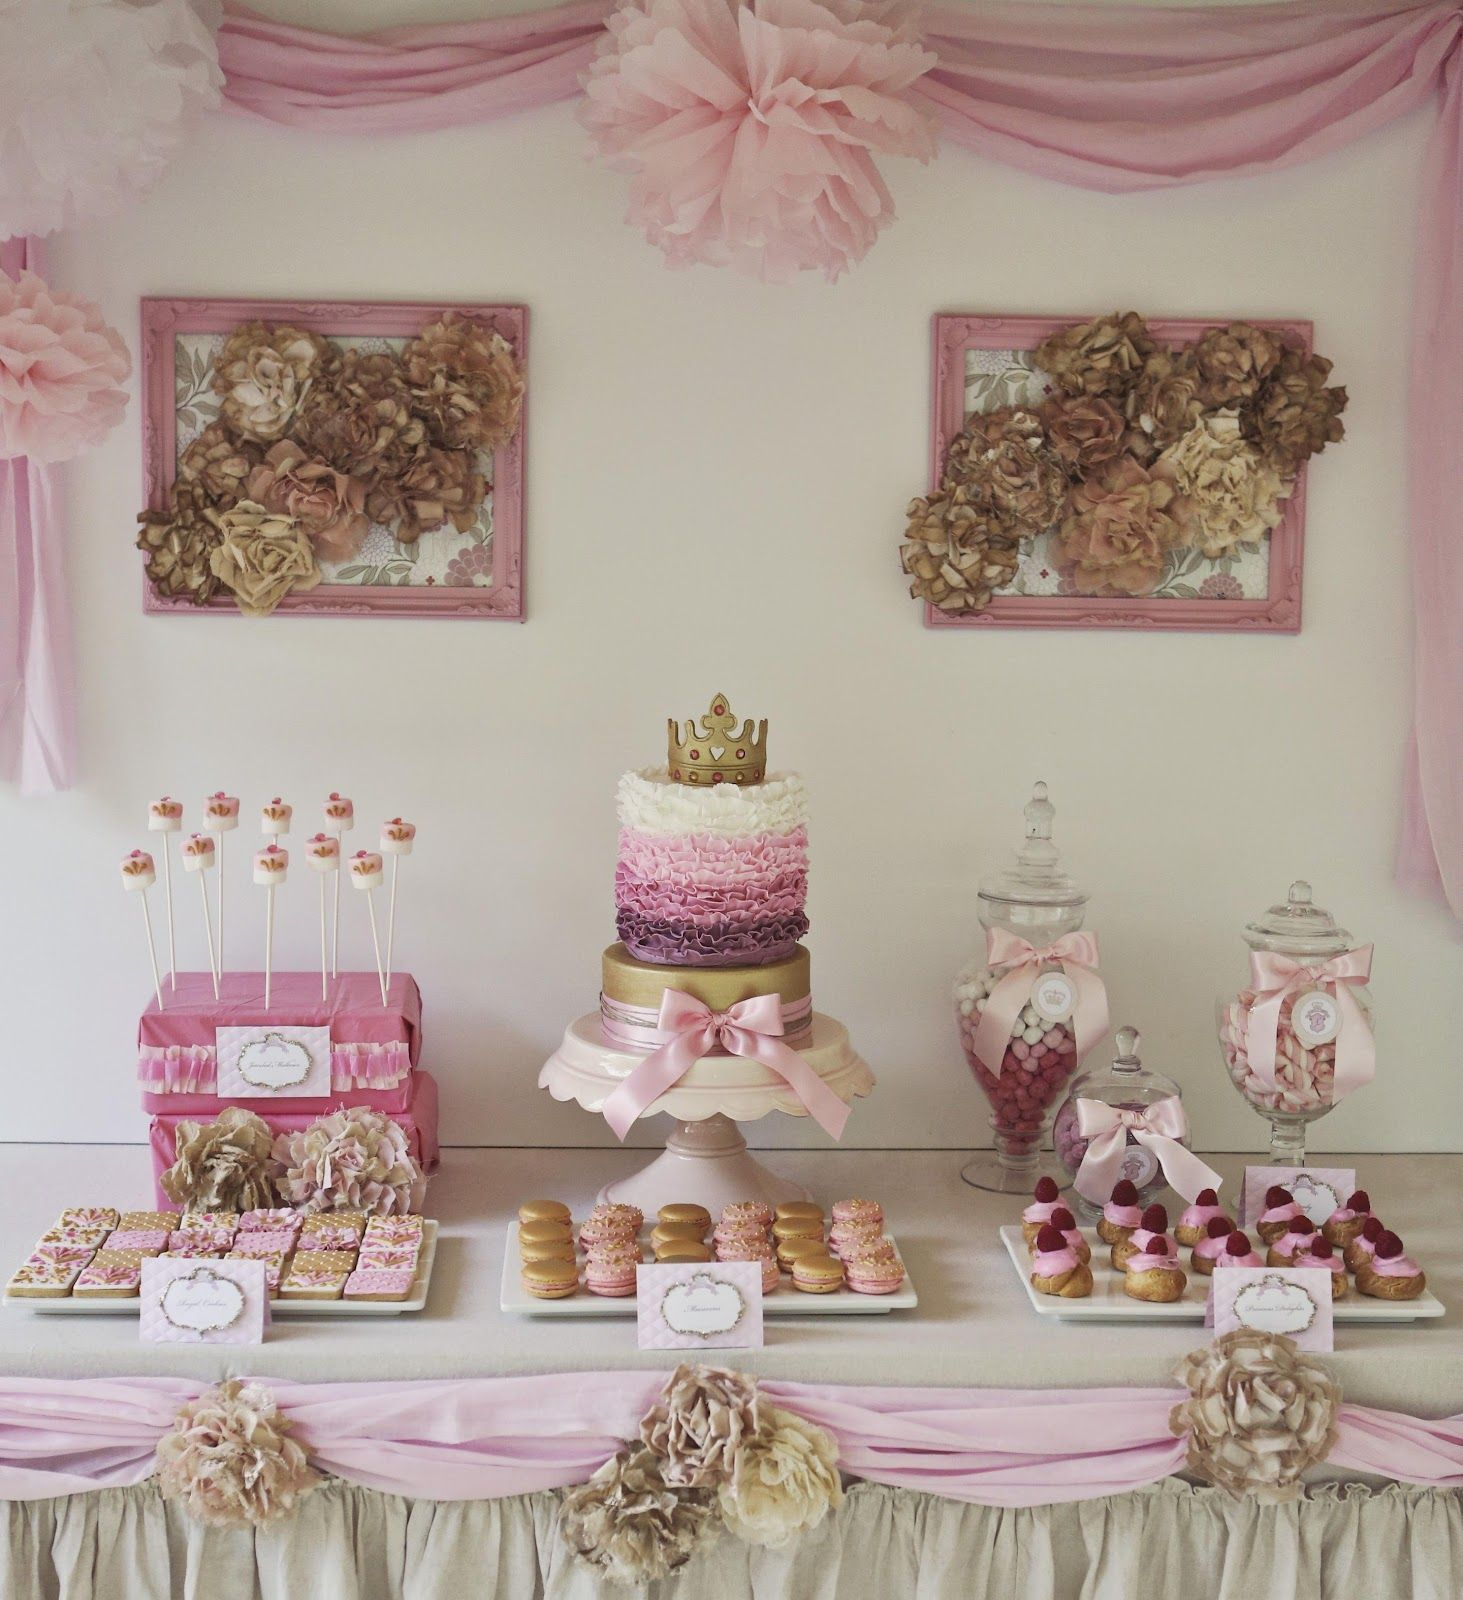 Birthday table decorations for girls - Pink And Gold Party Decorations Chic Princess 8th Birthday Party Click Here